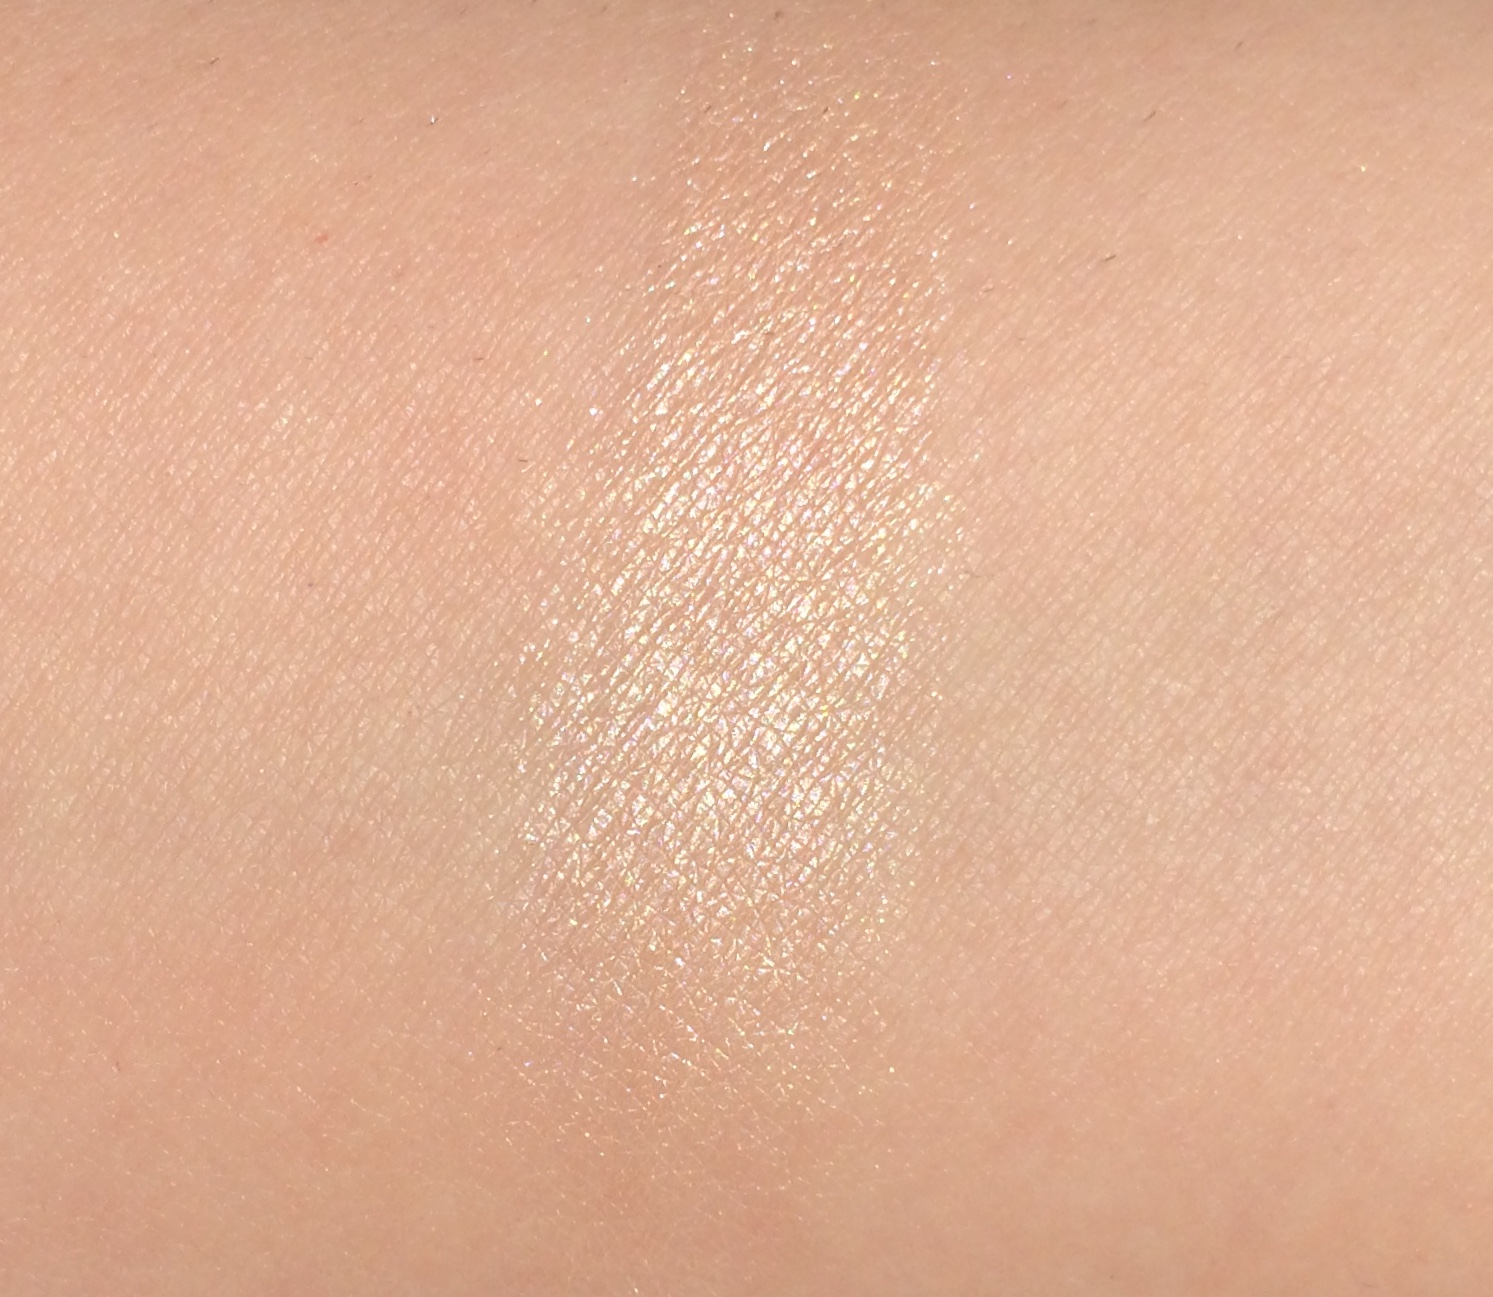 Benefit Dandelion Twinkle Highlighter | Review